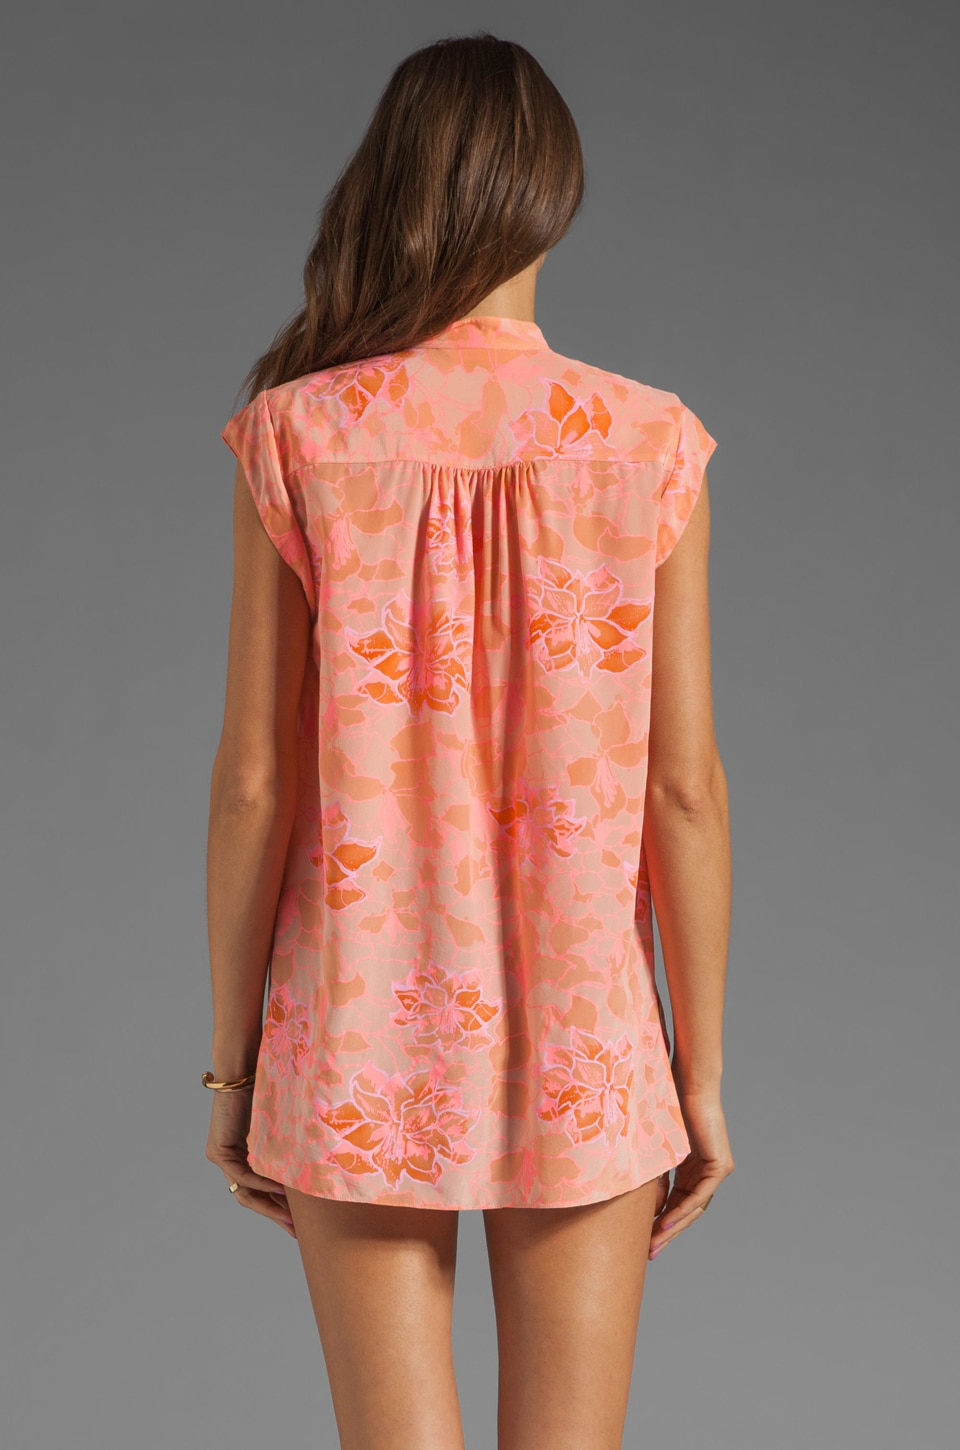 Rebecca Taylor Hibiscus Shirt in Tangerine